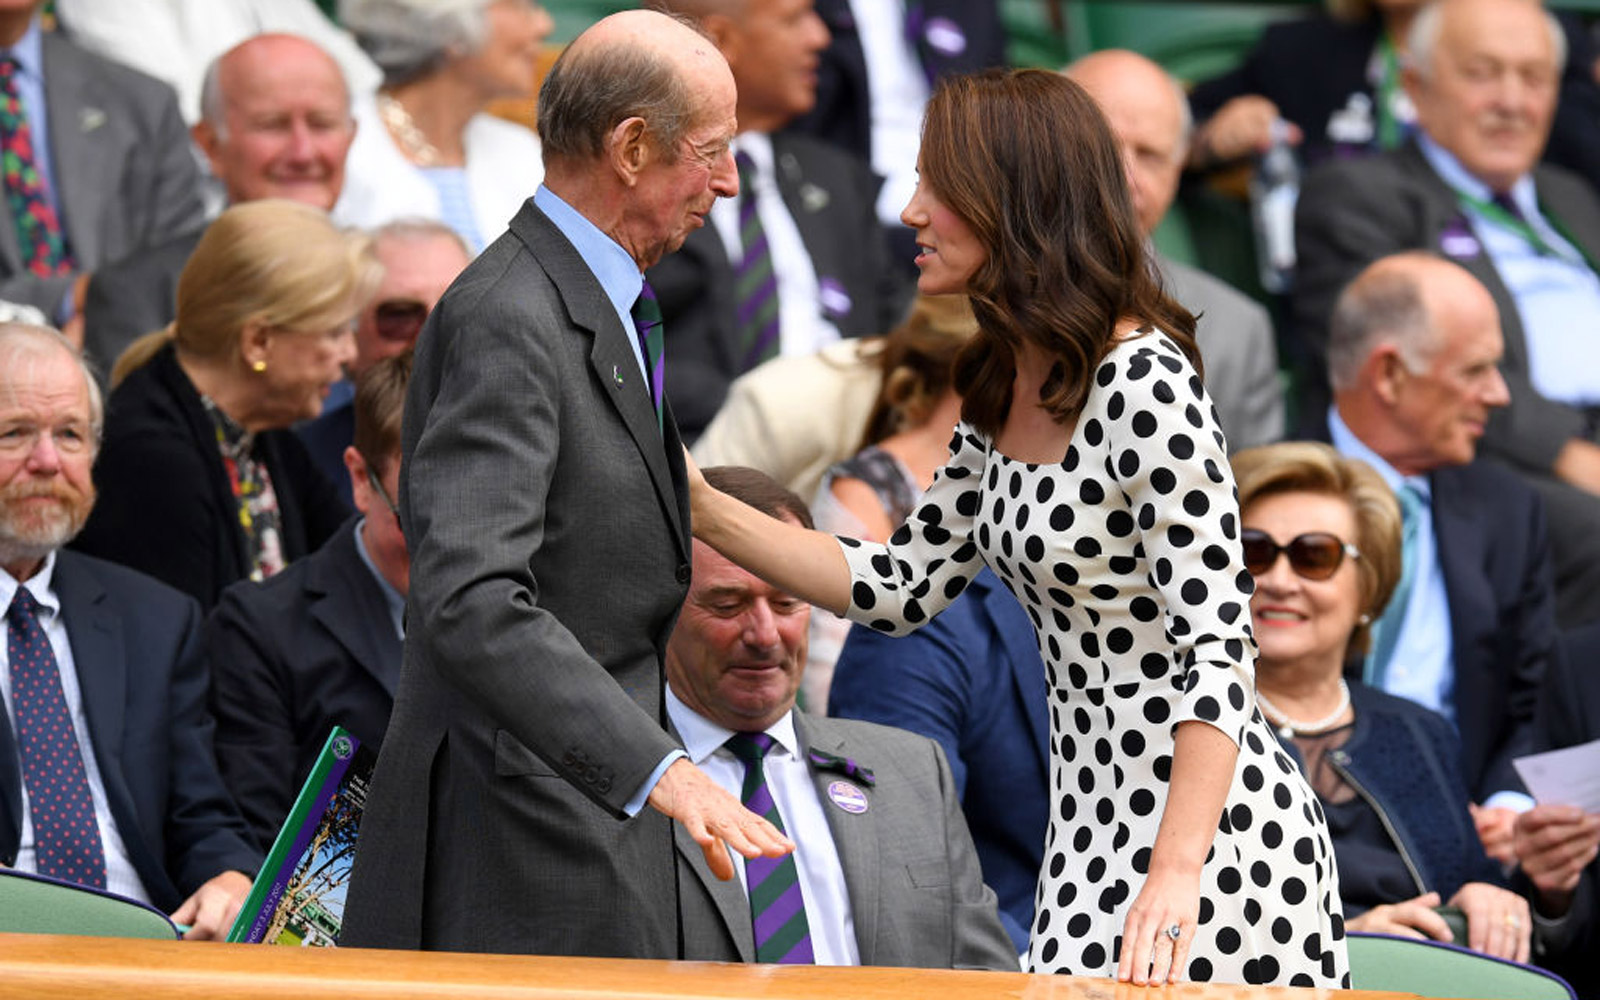 LONDON, ENGLAND - JULY 03:  Catherine, Duchess of Cambridge is greeted by HRH The Duke of Kent on centre court on day one of the Wimbledon Lawn Tennis Championships at the All England Lawn Tennis and Croquet Club on July 3, 2017 in London, England.  (Phot